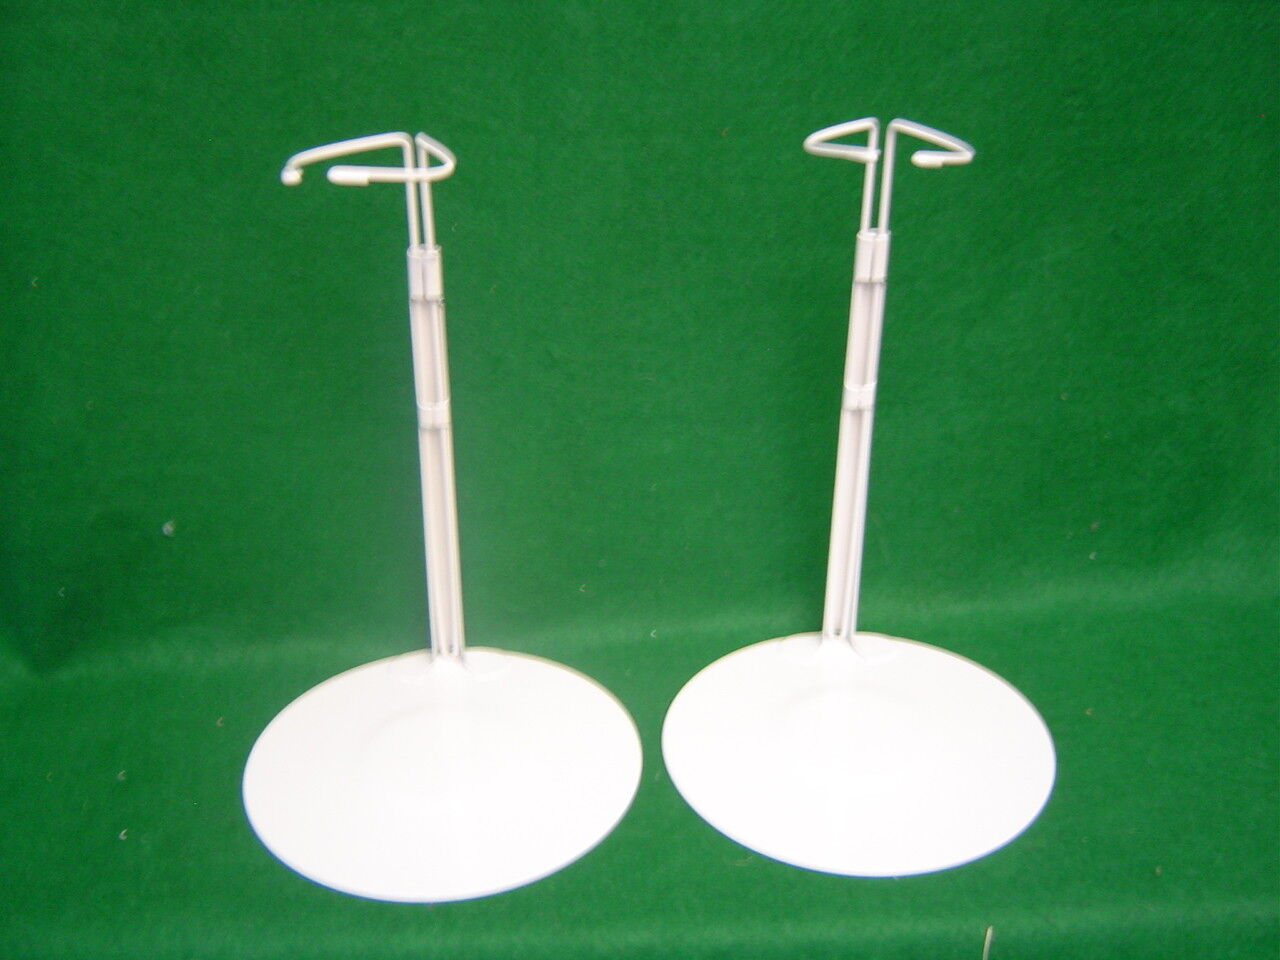 Doll Stands Set Of Two Gray Metal Stands For 12-20 Inch Dolls And Teddy Bears  - $6.99